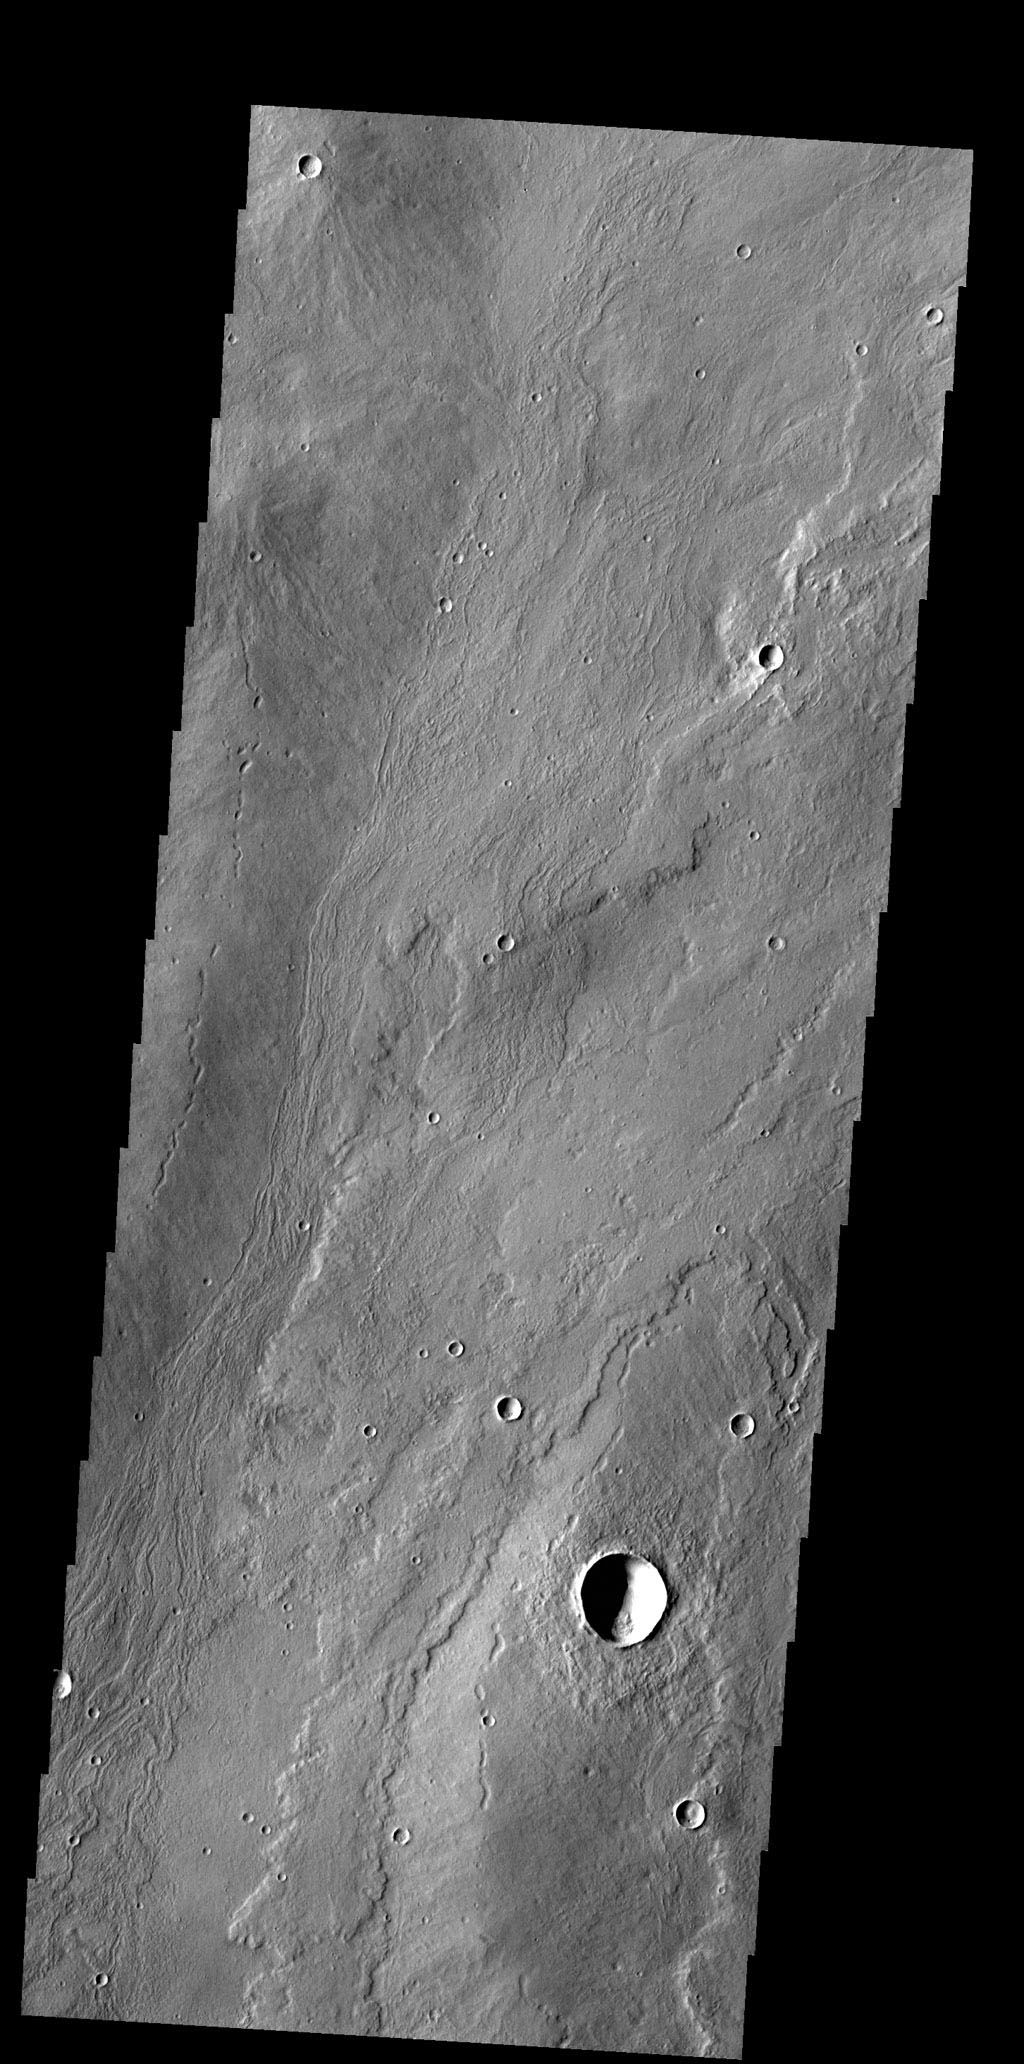 The flows in this image captured by NASA's 2001 Mars Odyssey spacecraft originated at Alba Mons.